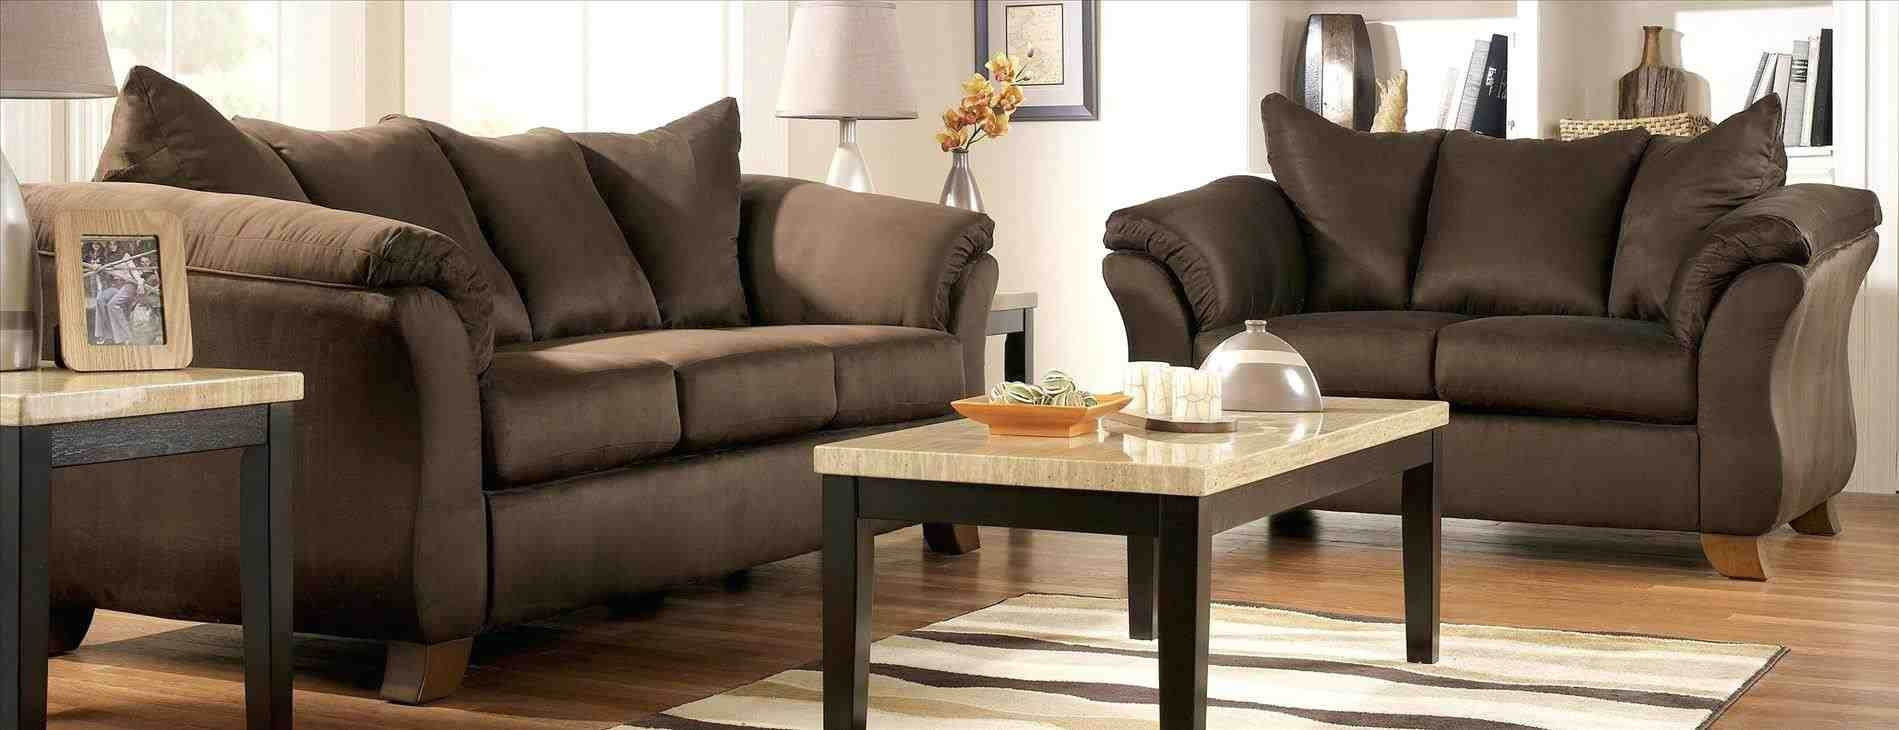 sofa materials bangalore camarote con cama en costa rica cheap india modern set designs in kenya sets malaysia remodell yourome decor diy with cool living room cream leather